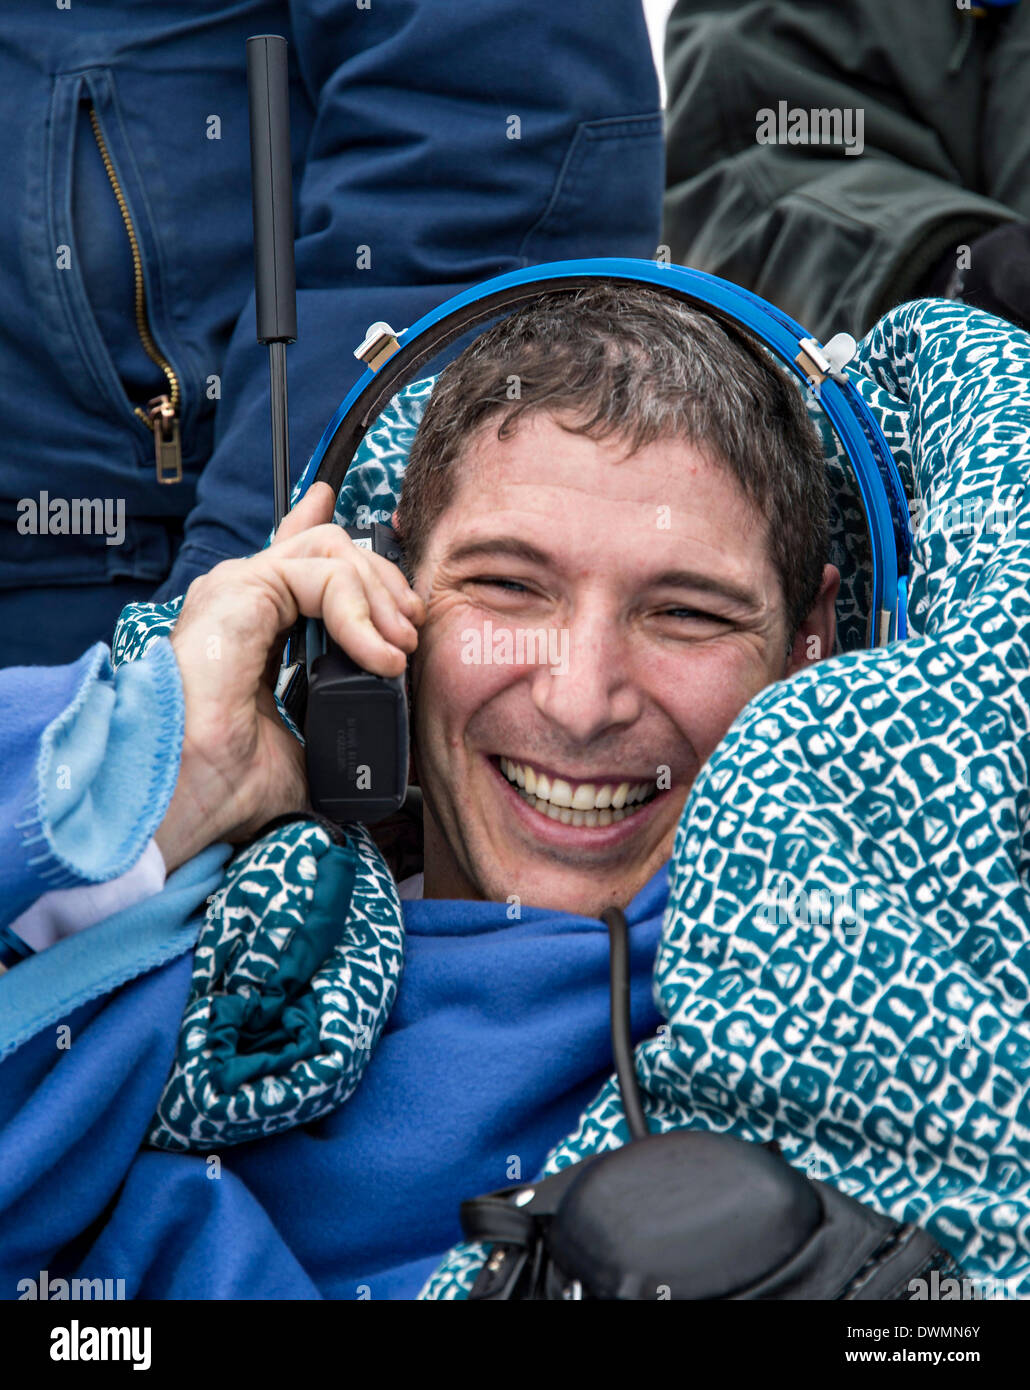 International Space State Expedition 38 astronaut Mike Hopkins of NASA talks to his family via satellite phone outside the Soyuz Capsule after landing in a Soyuz TMA-10M spacecraft March 11, 2014 near the town of Zhezkazgan, Kazakhstan. Hopkins, Kotov and Ryazanskiy returned to Earth after five and a half months onboard the International Space Station where they served as members of the Expedition 37 and 38 crews. - Stock Image